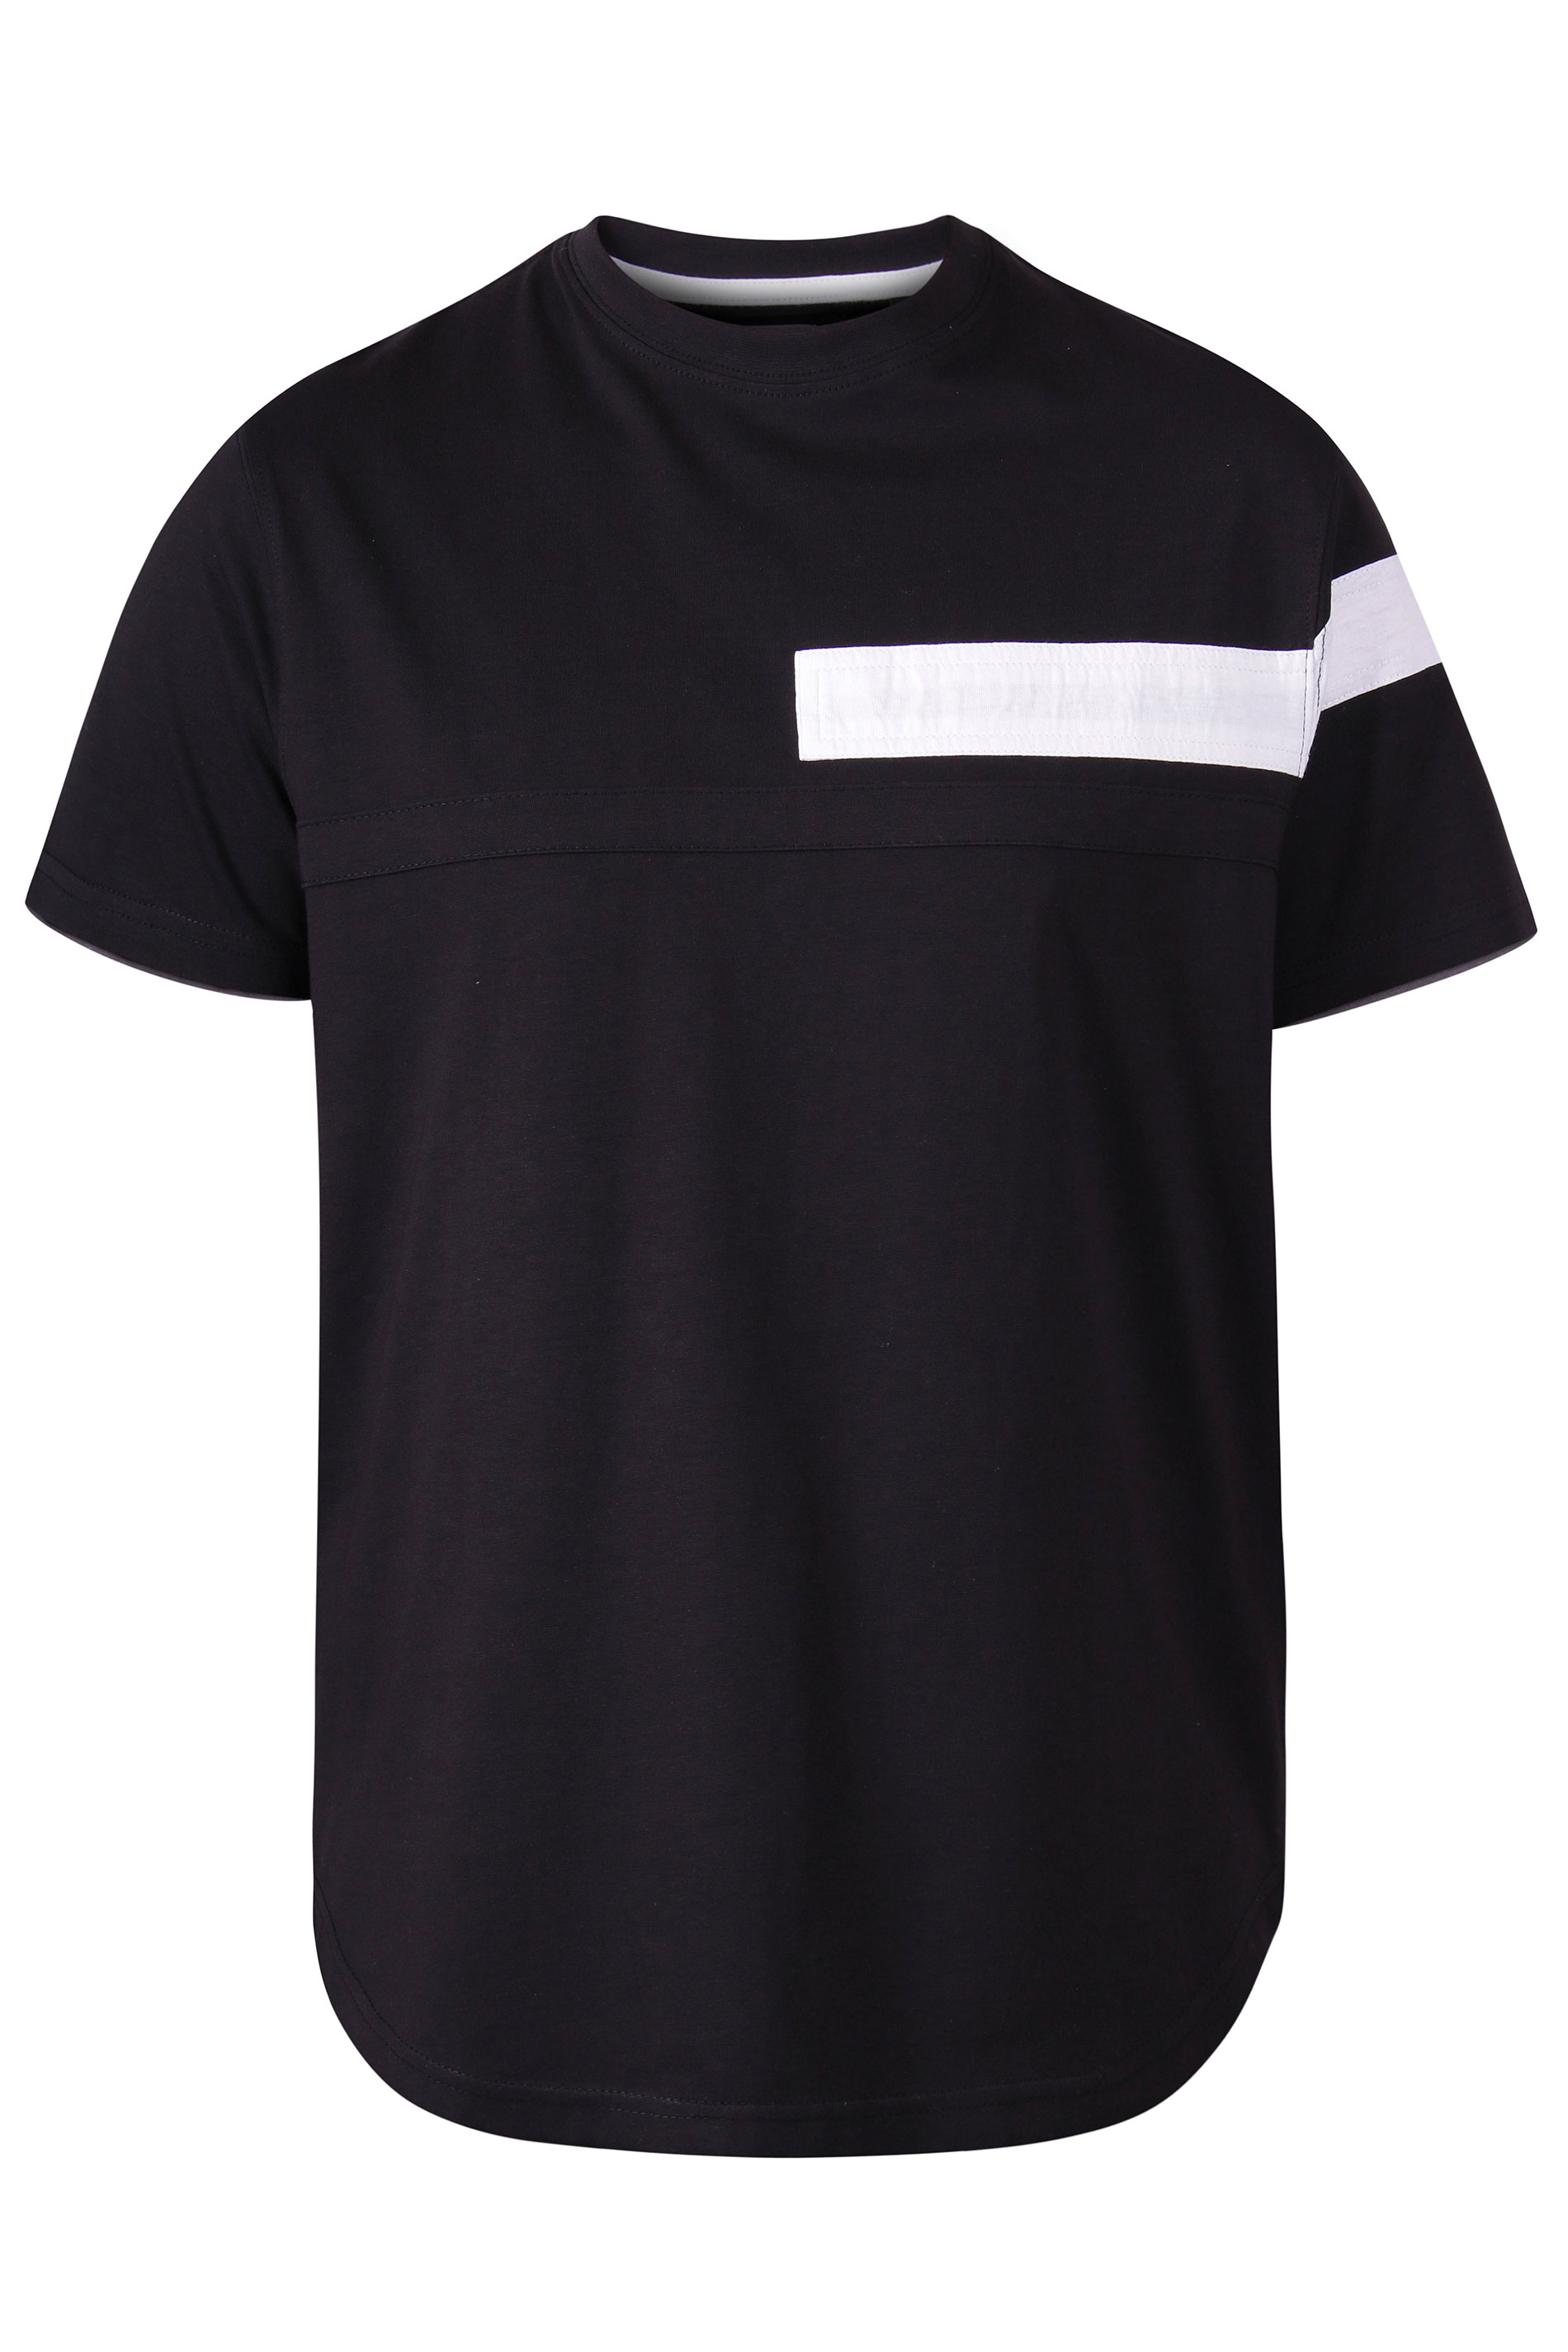 D555 Black Couture Cut And Sew Curved T-Shirt